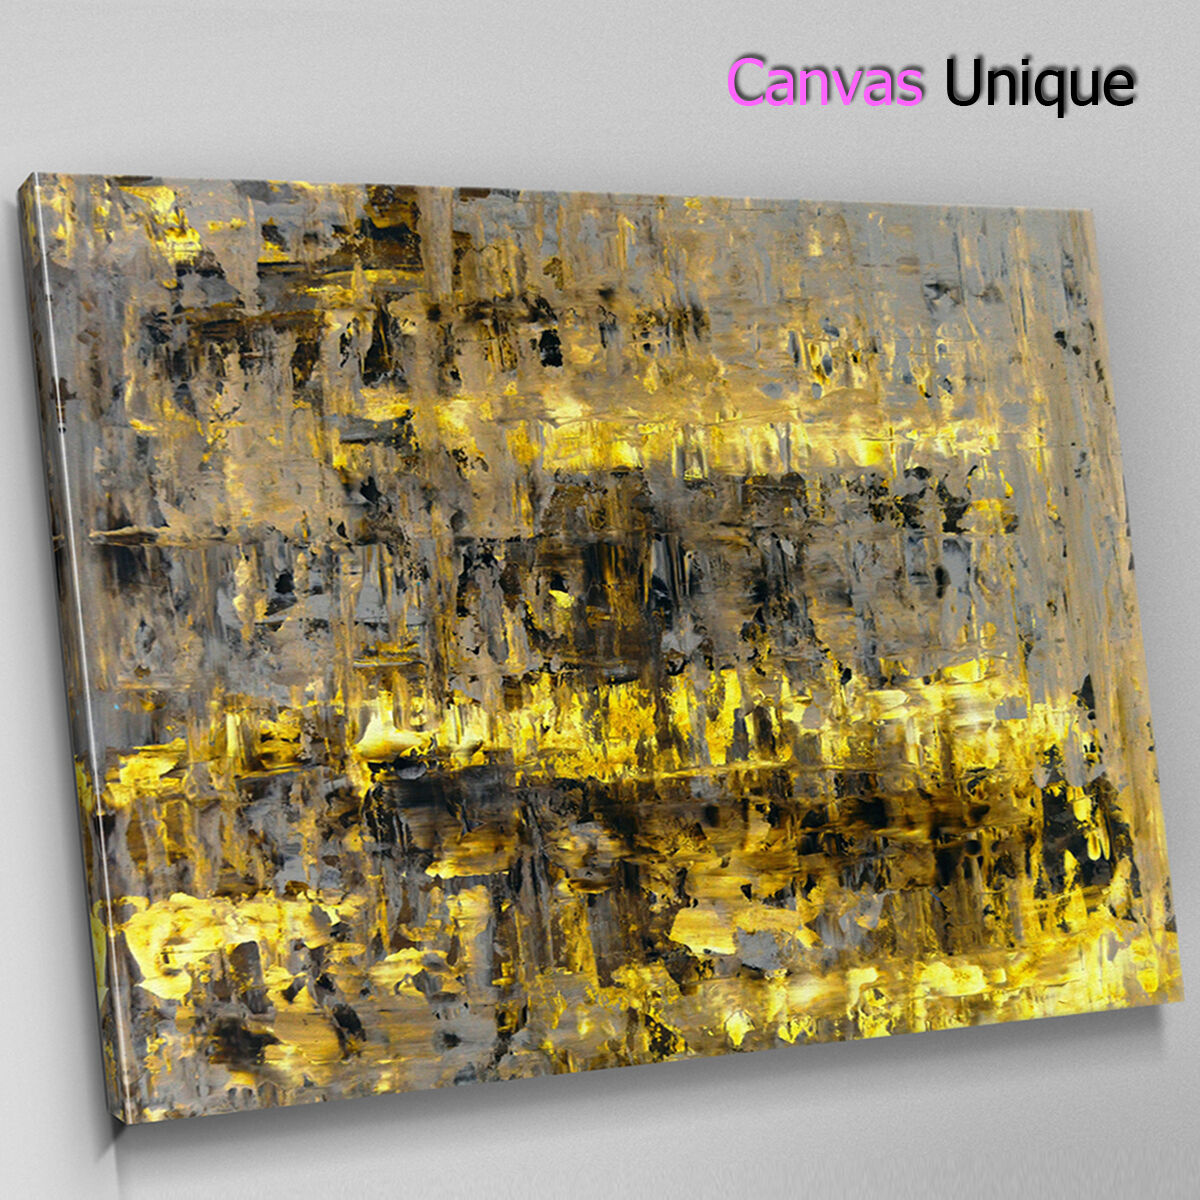 AB1581 Gelb grunge contemporary Abstract Canvas Wall Art Framed Picture Print